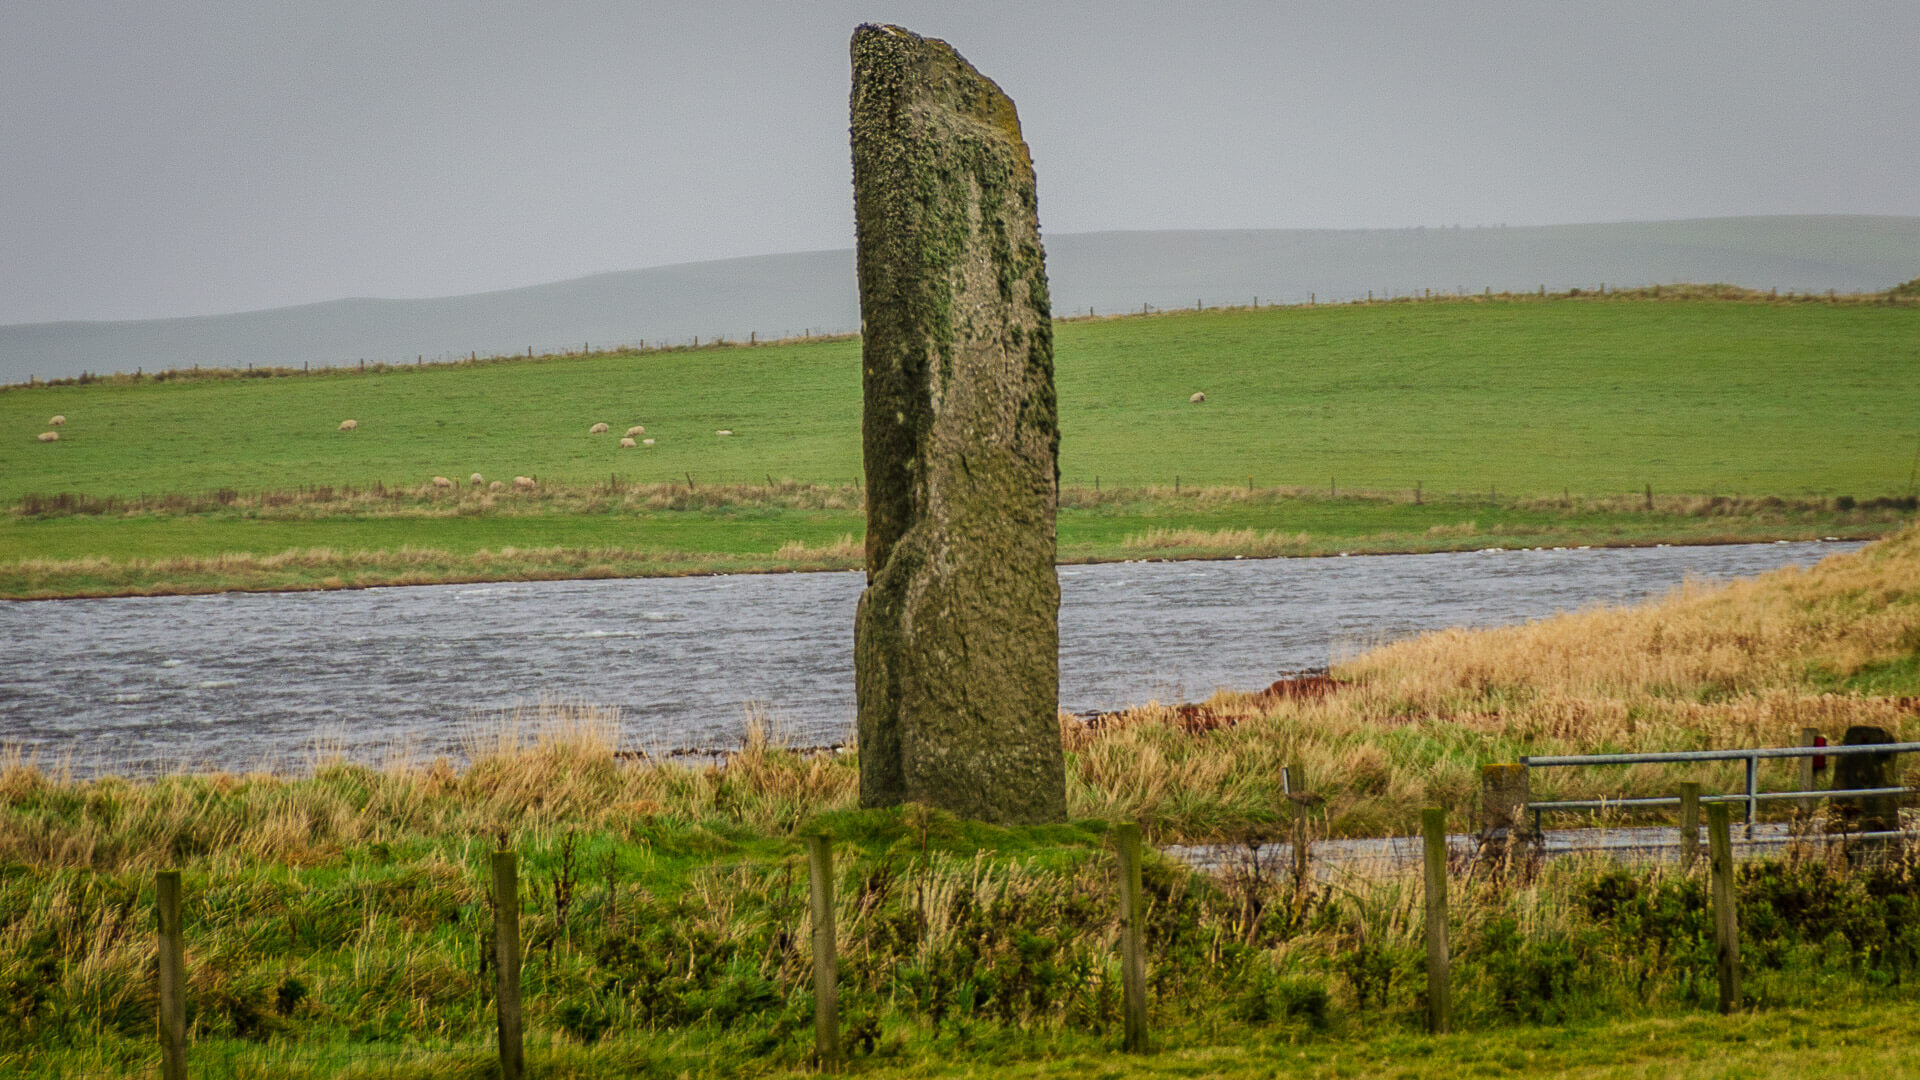 The Watchstone